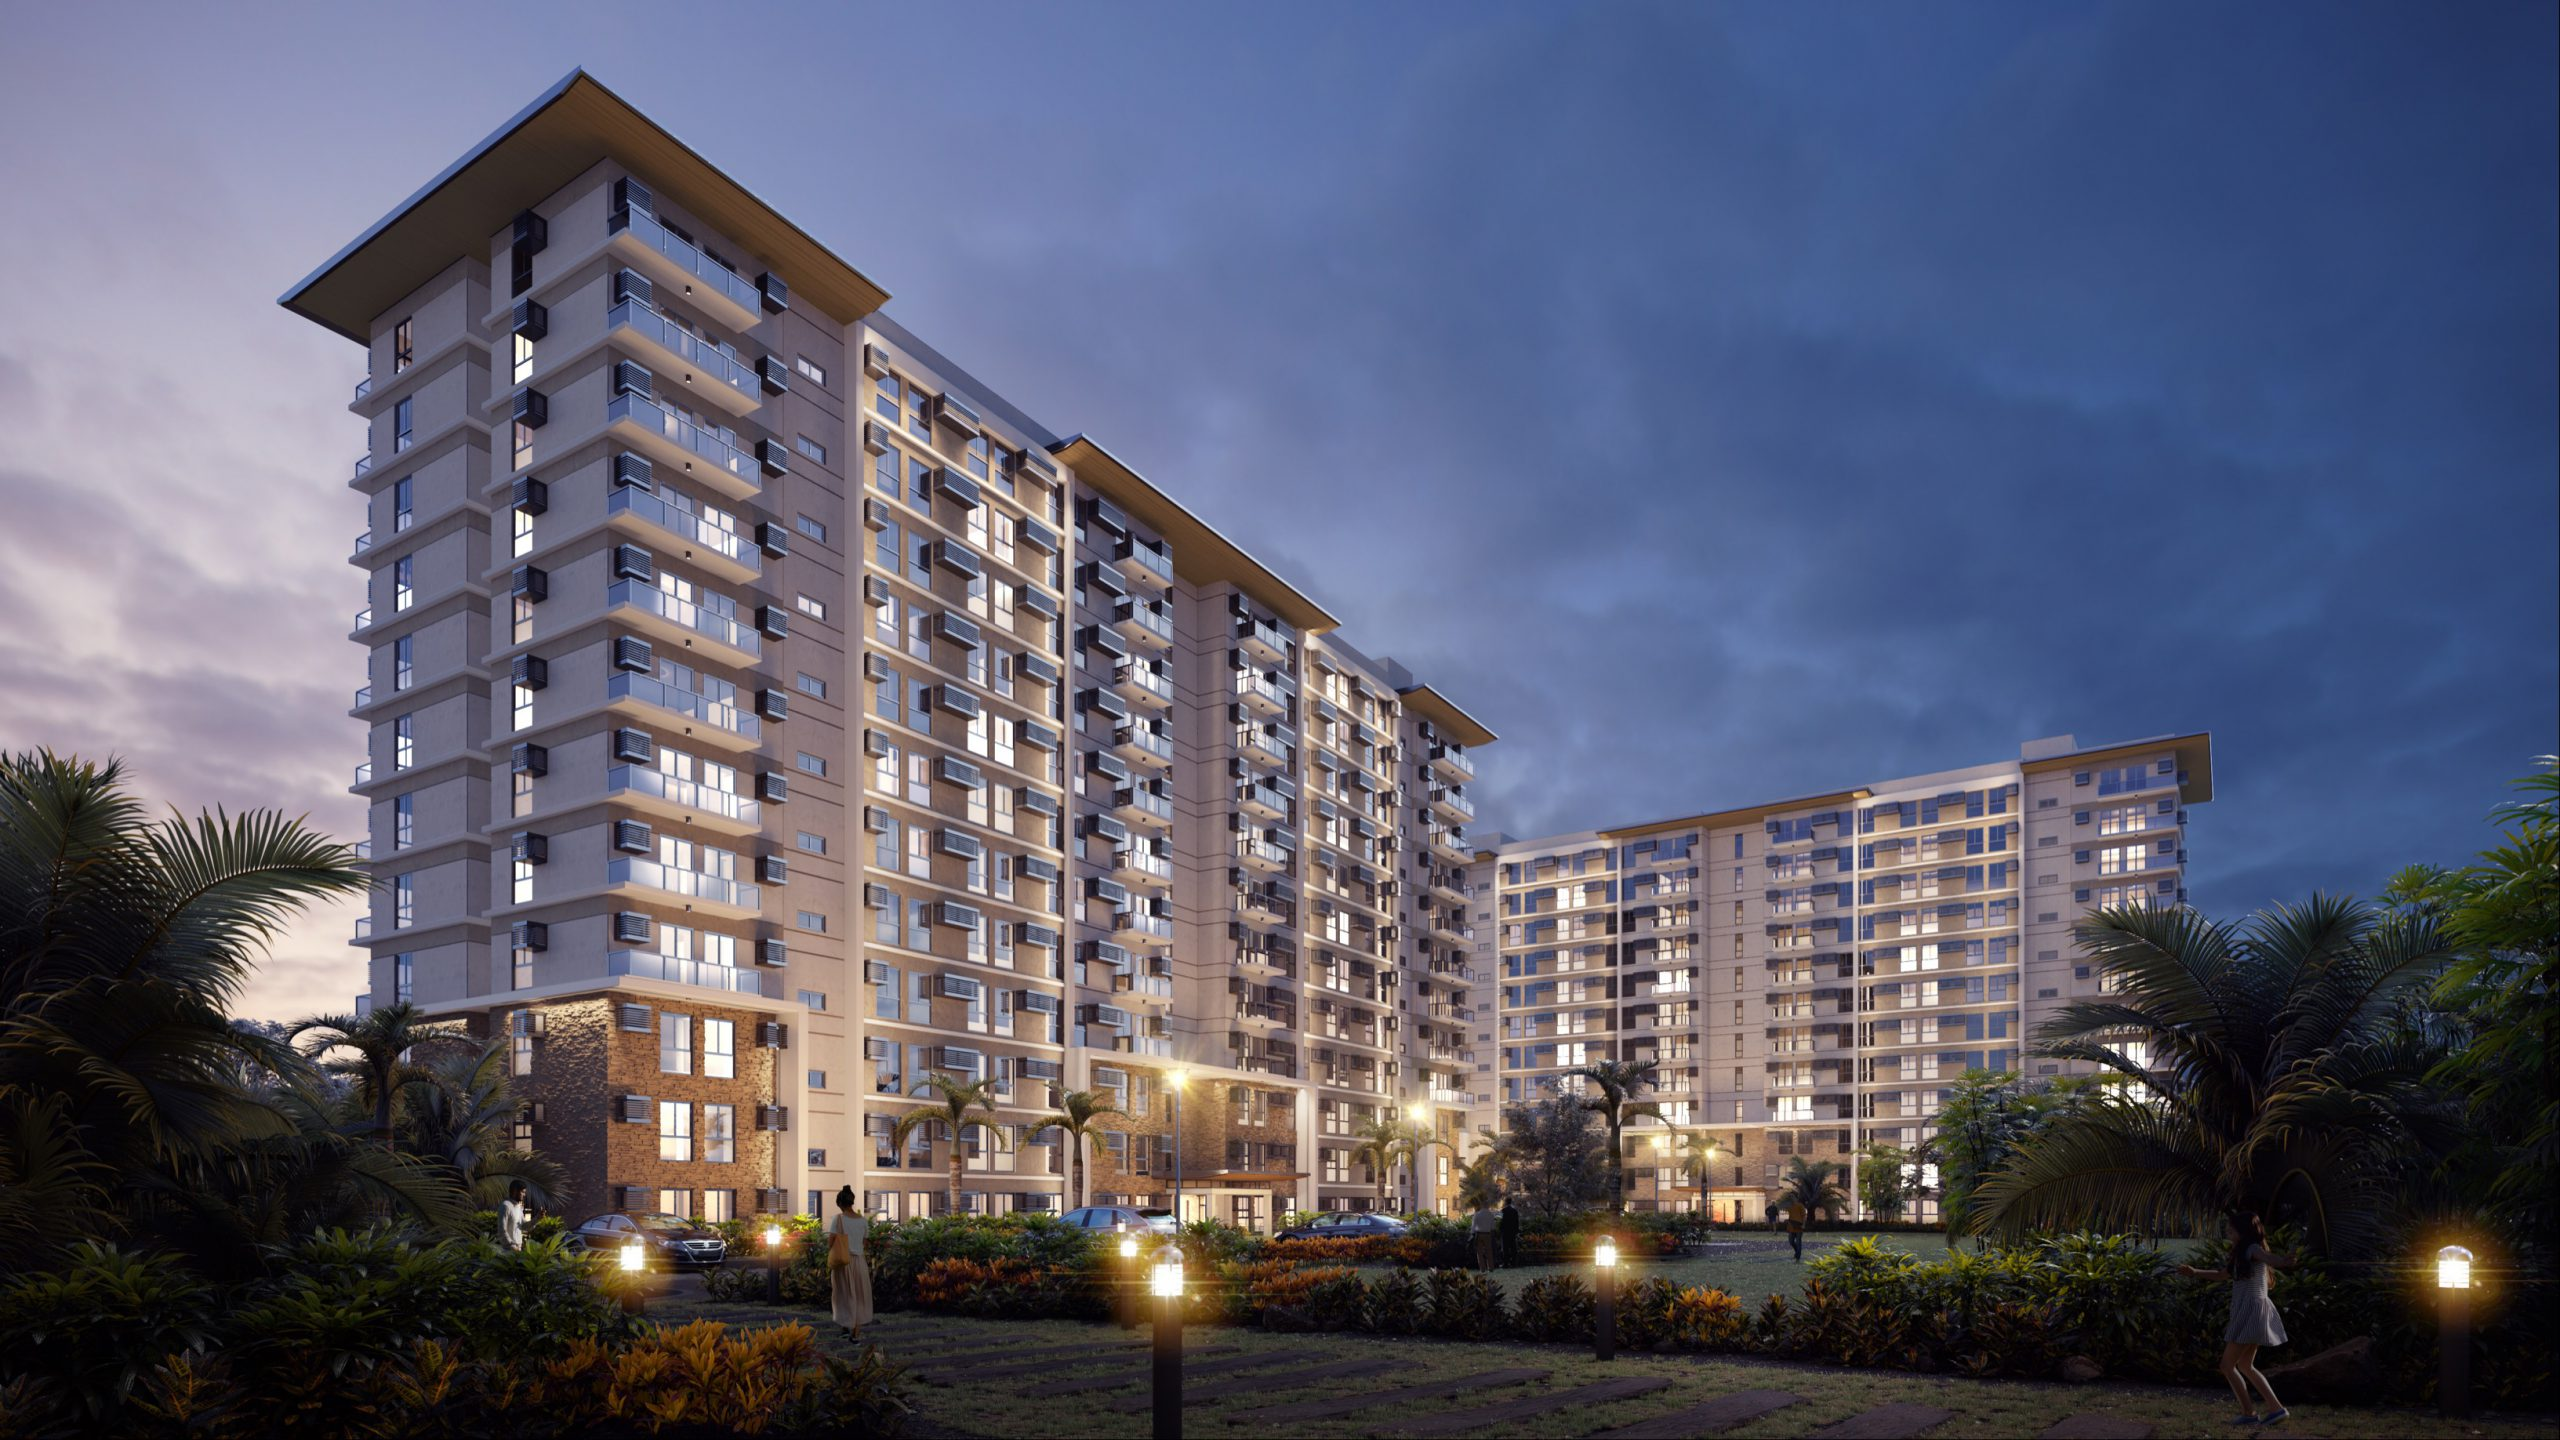 COHO by Vista Land condo for sale building facade with lights at night and greenery at night